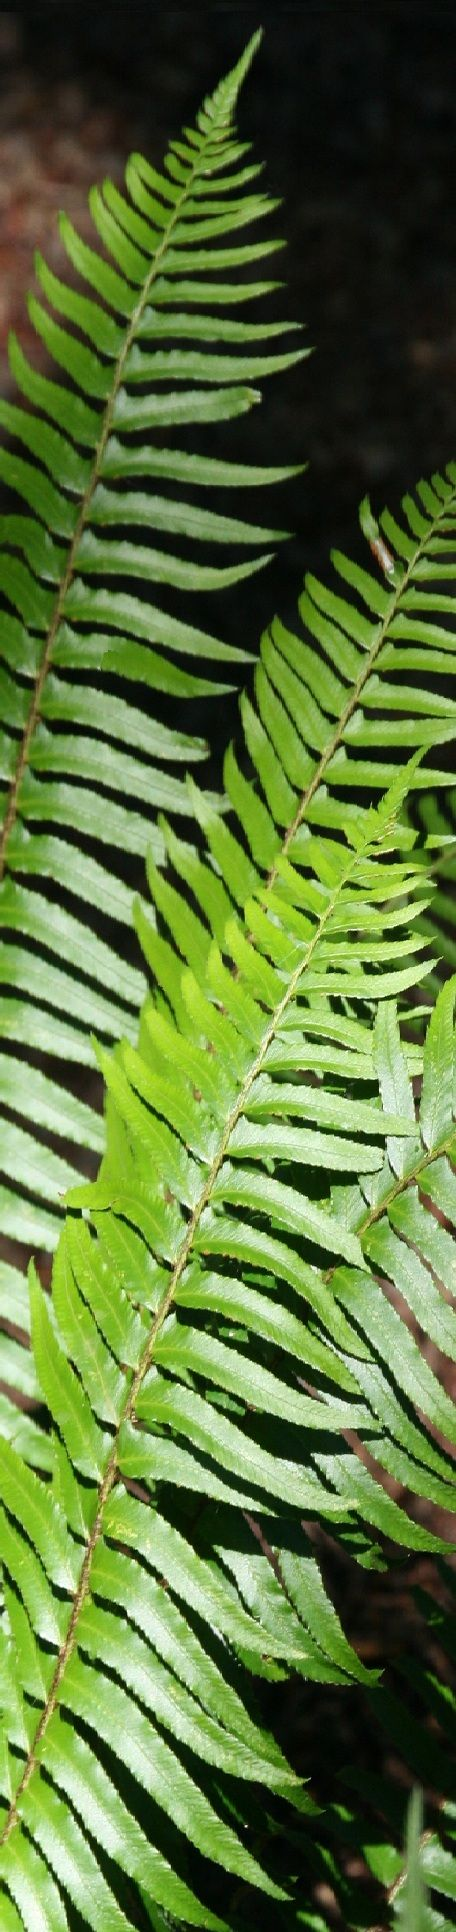 oregon green ferns - photo #9